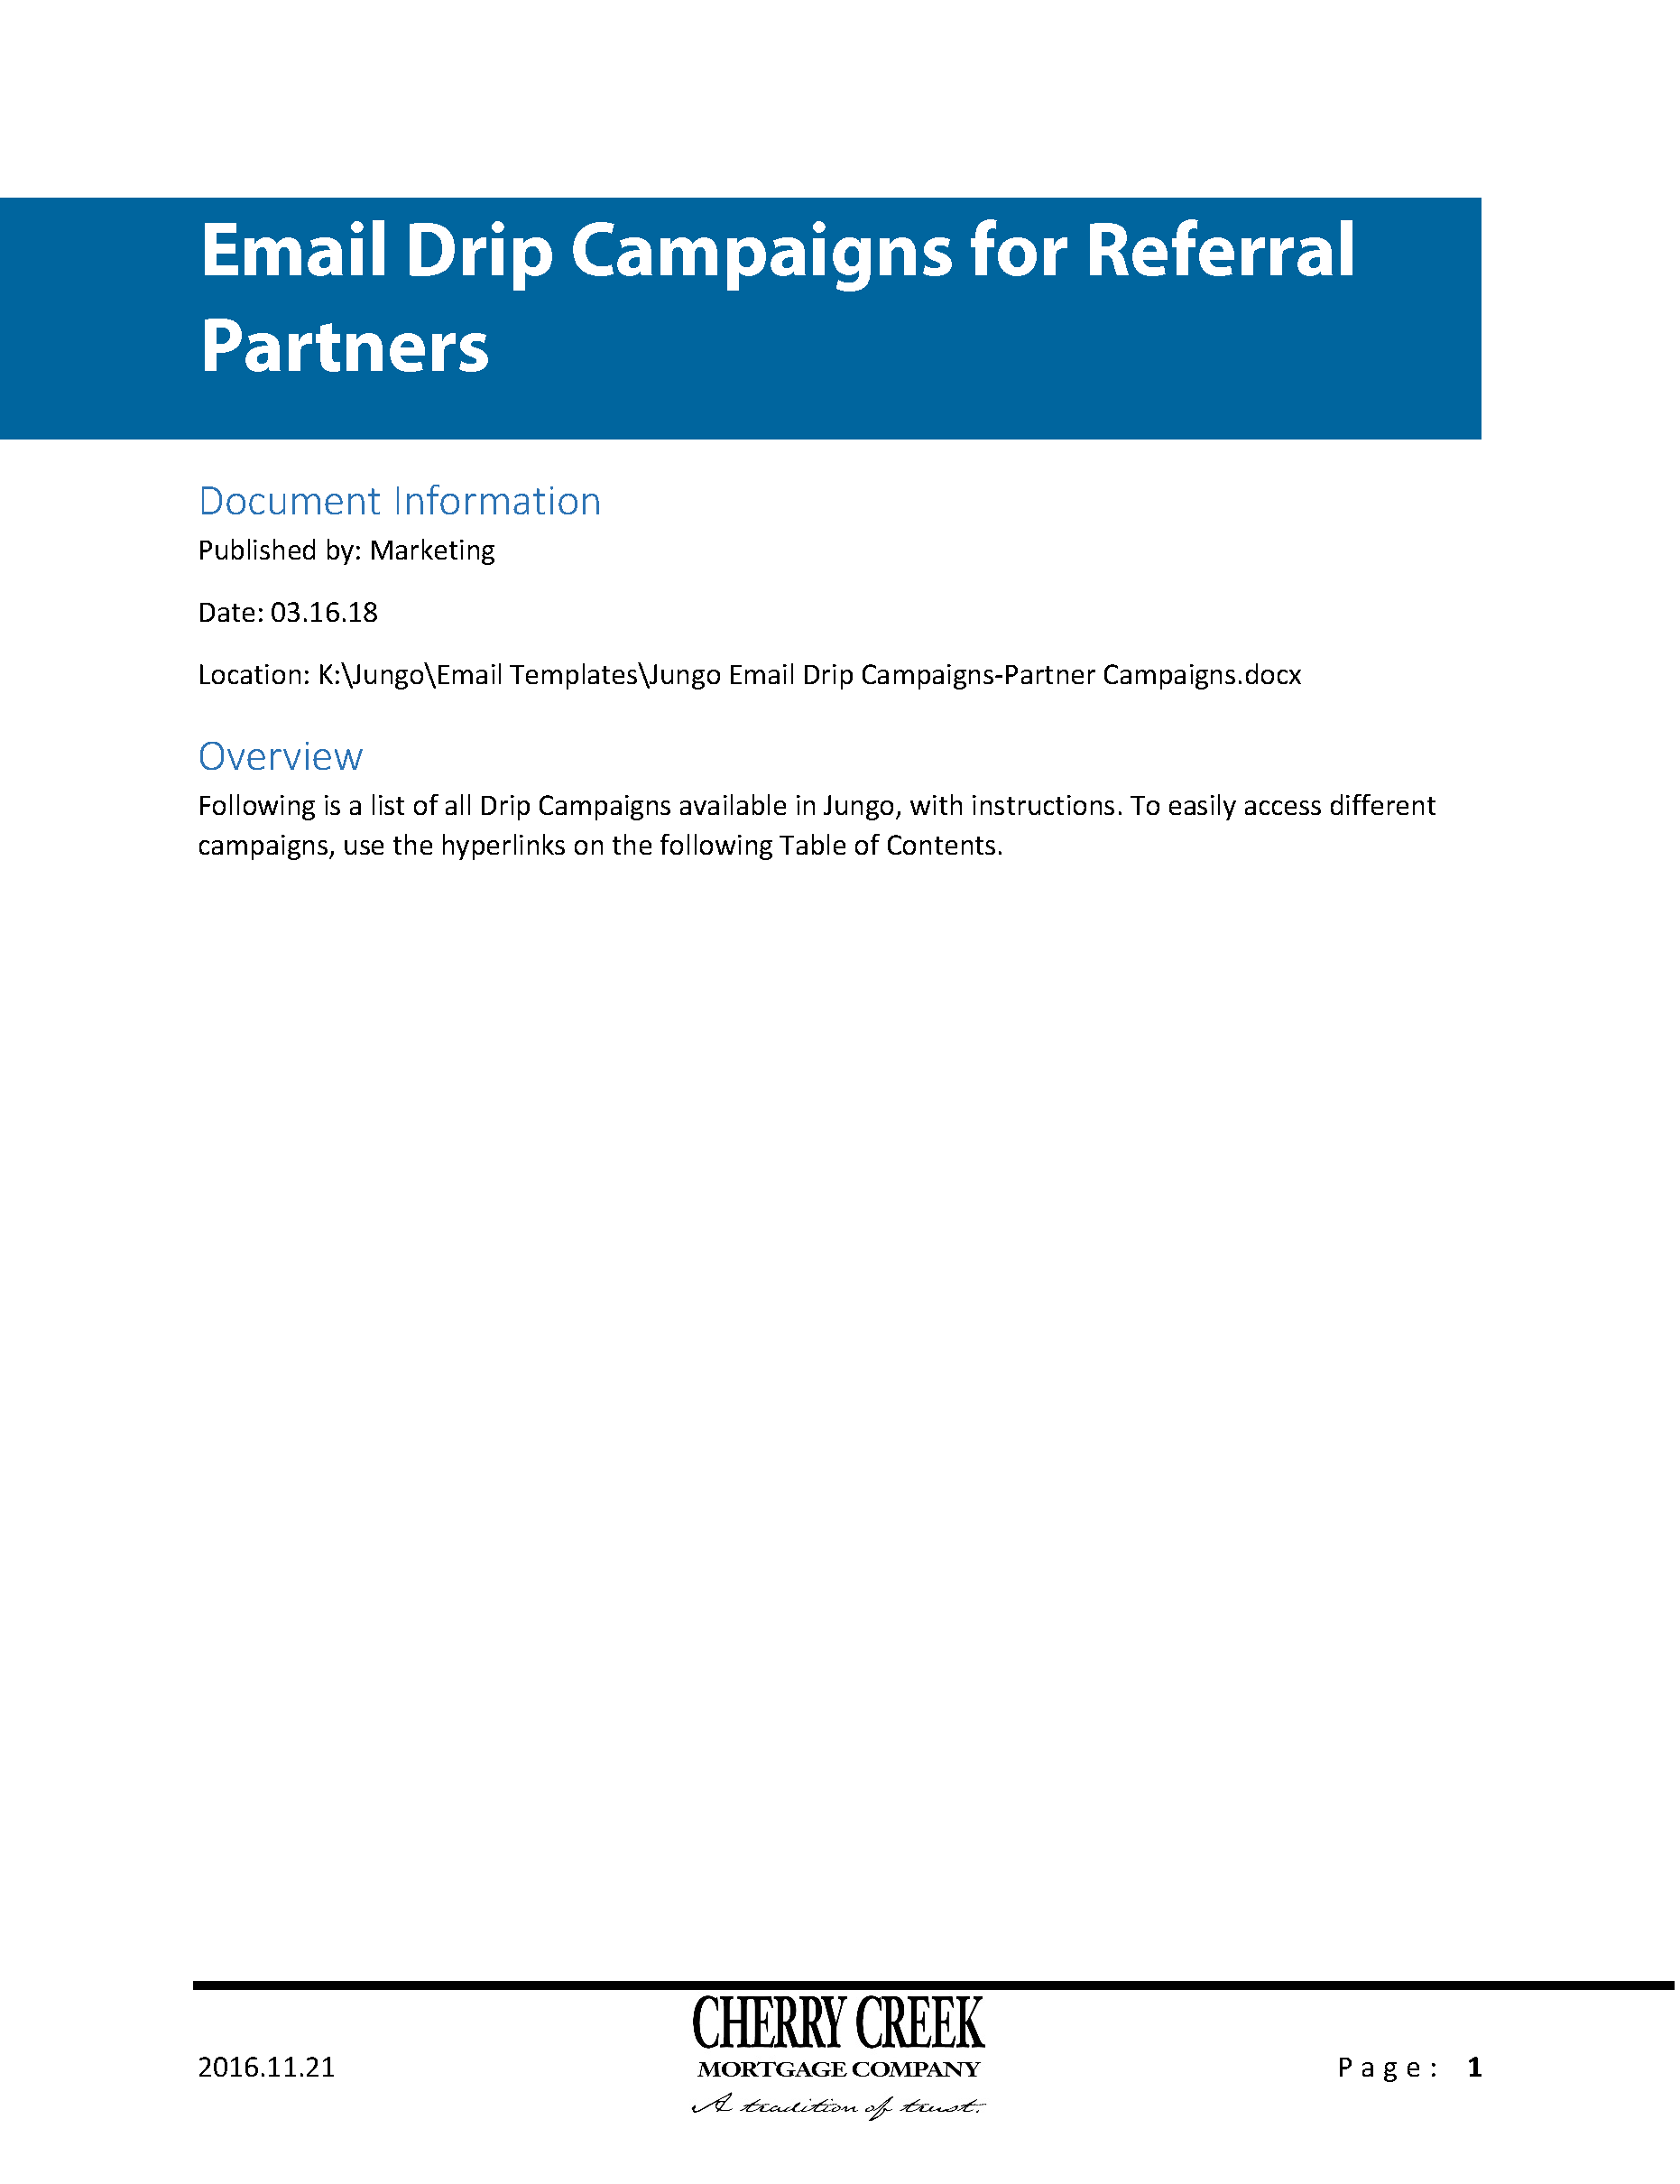 Jungo Email Drip Campaigns-Partner Campaigns_936fvYX_Page_01.png